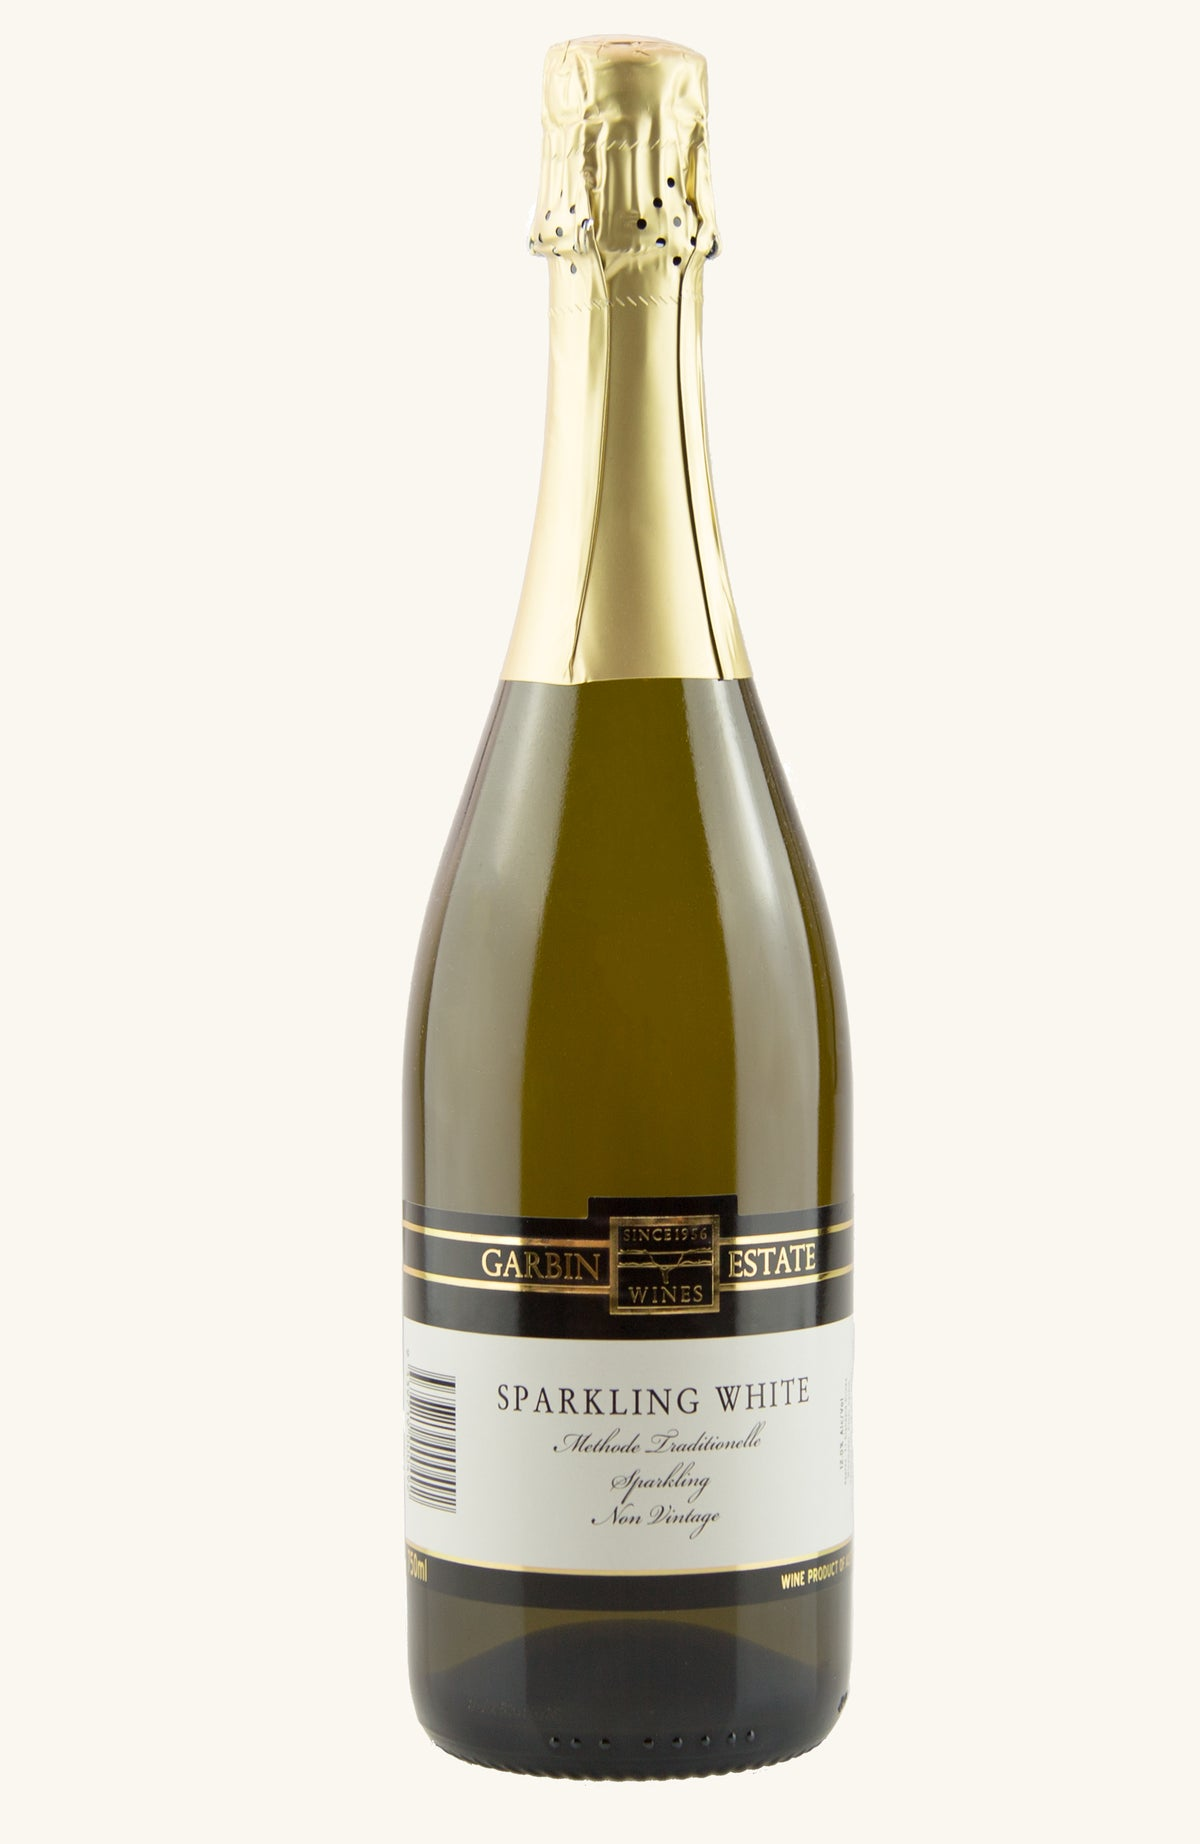 Garbin Estate Wines Non Vintage Sparkling White